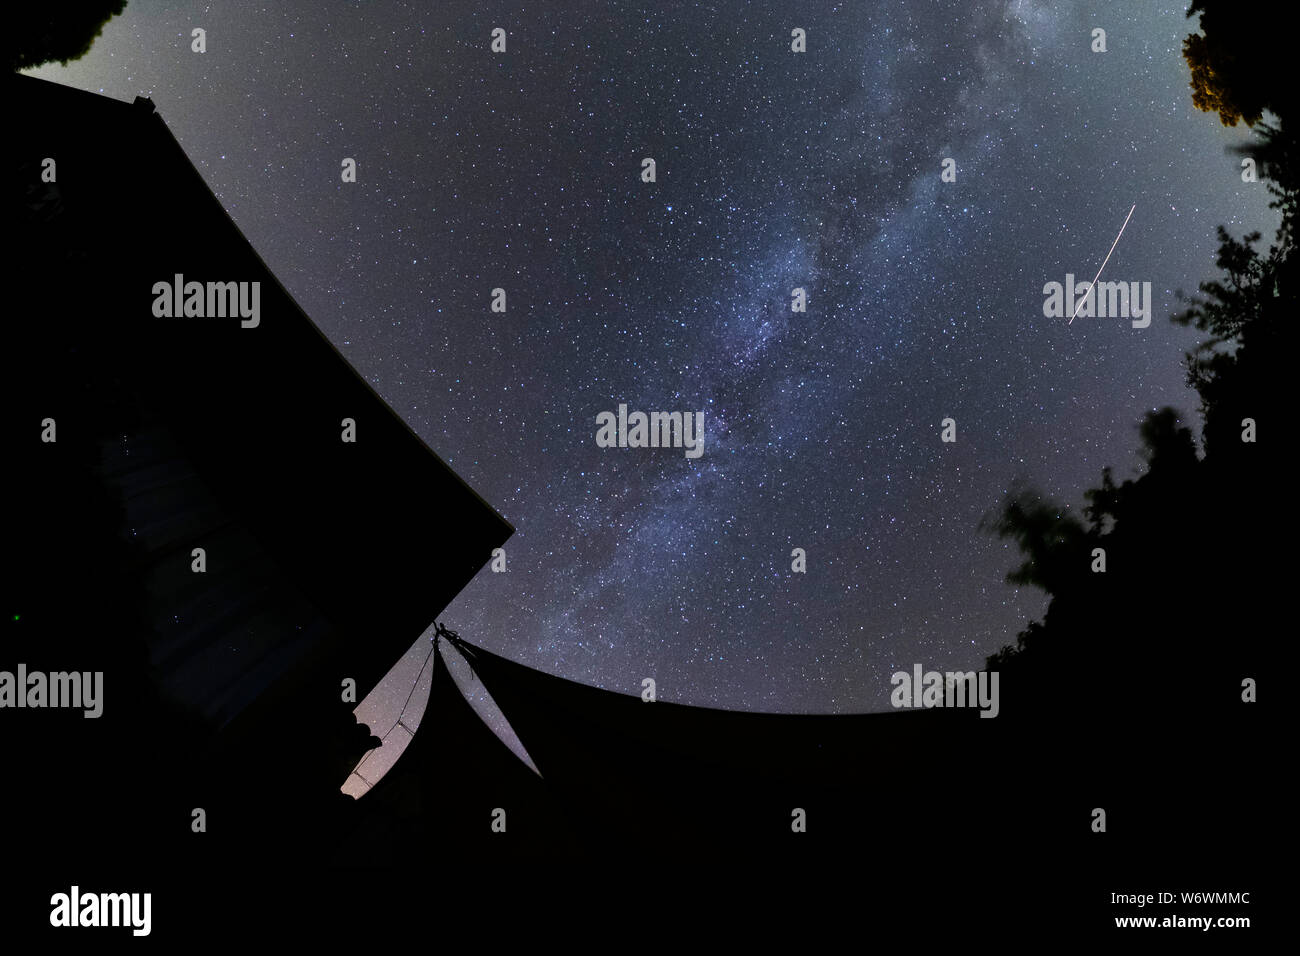 Sablet, The Vaucluse, France. 3rd August 2019. Clear dark skies in southern France show the Milky Way appearing brightly in the night sky with a bright satellite trail running parallel to the galactic plane. Credit: Malcolm Park/Alamy Live News. Stock Photo